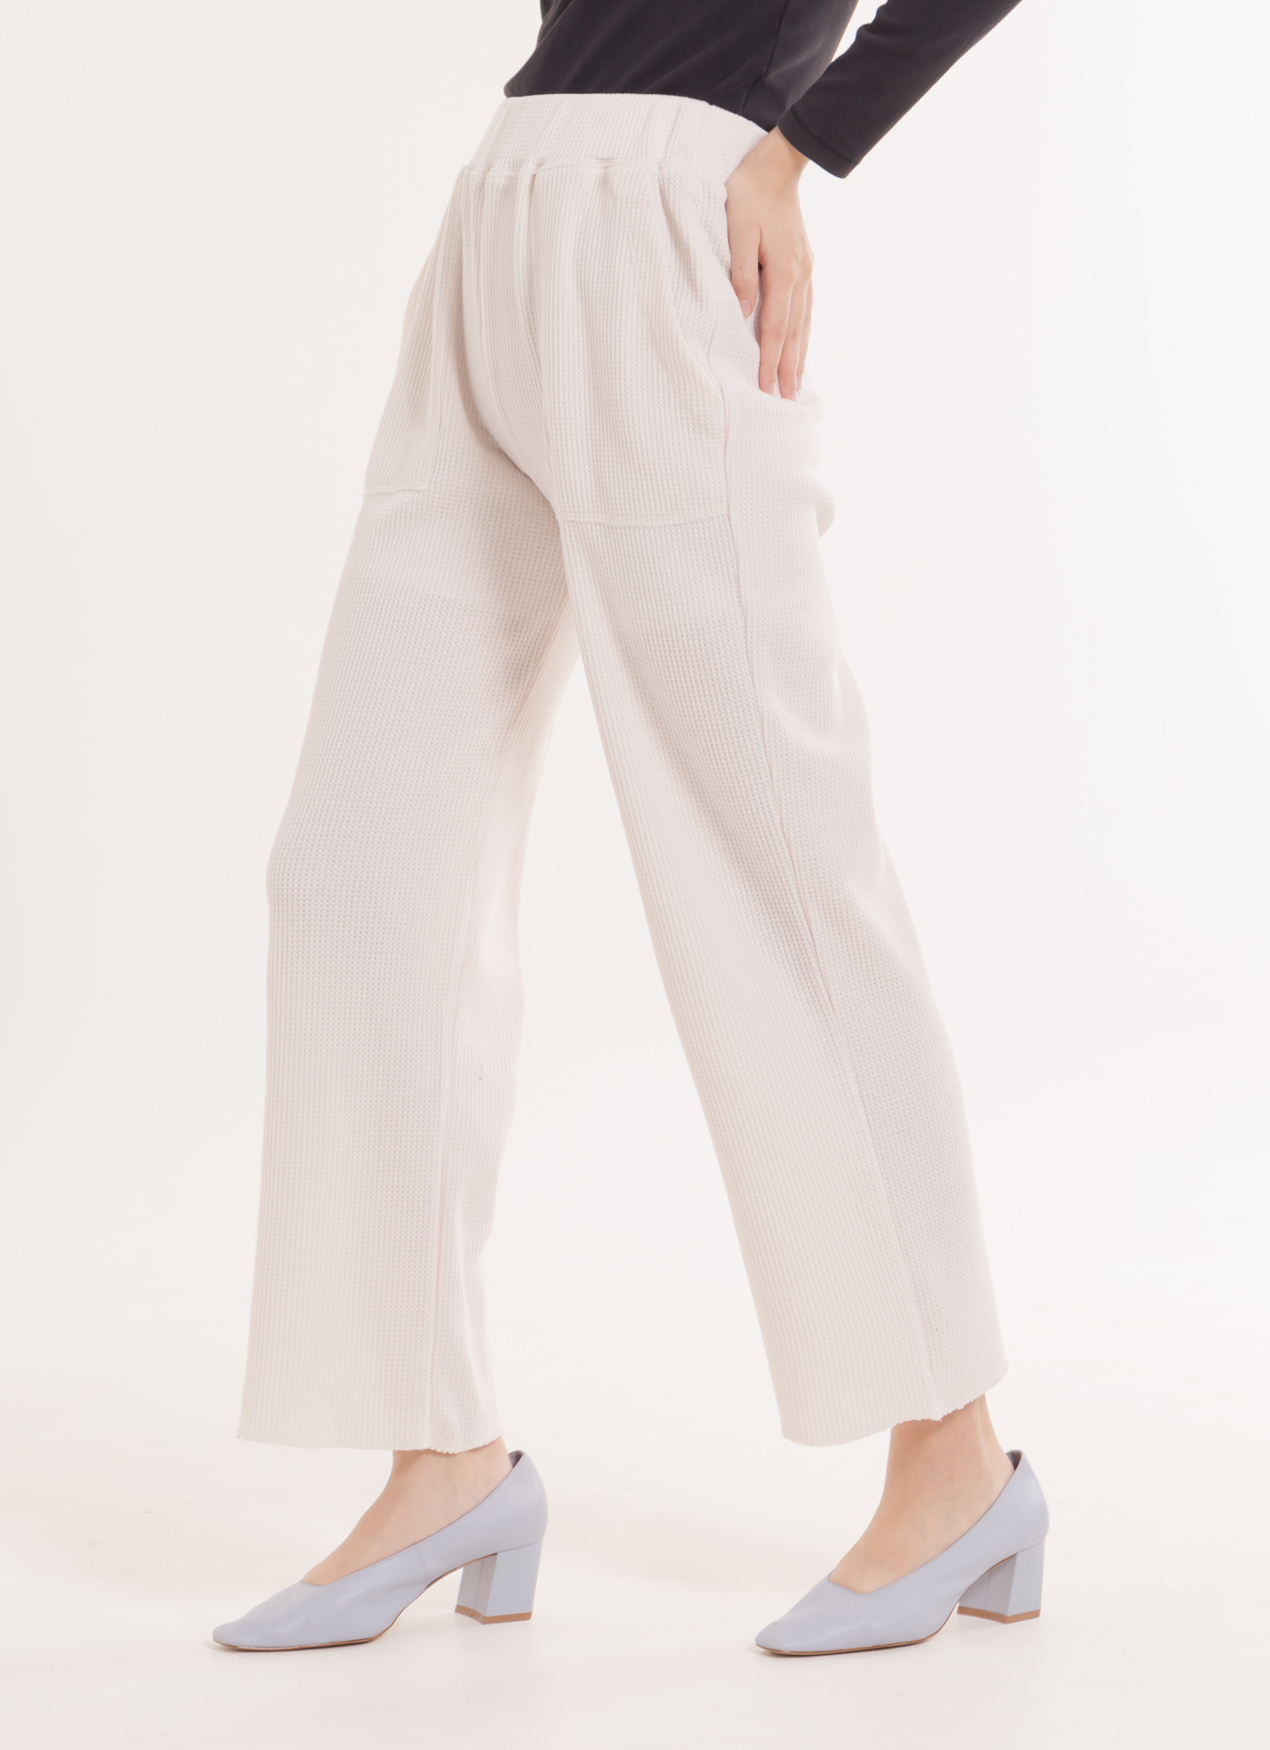 E-hyphen World Gallery Sara Pants - Off White